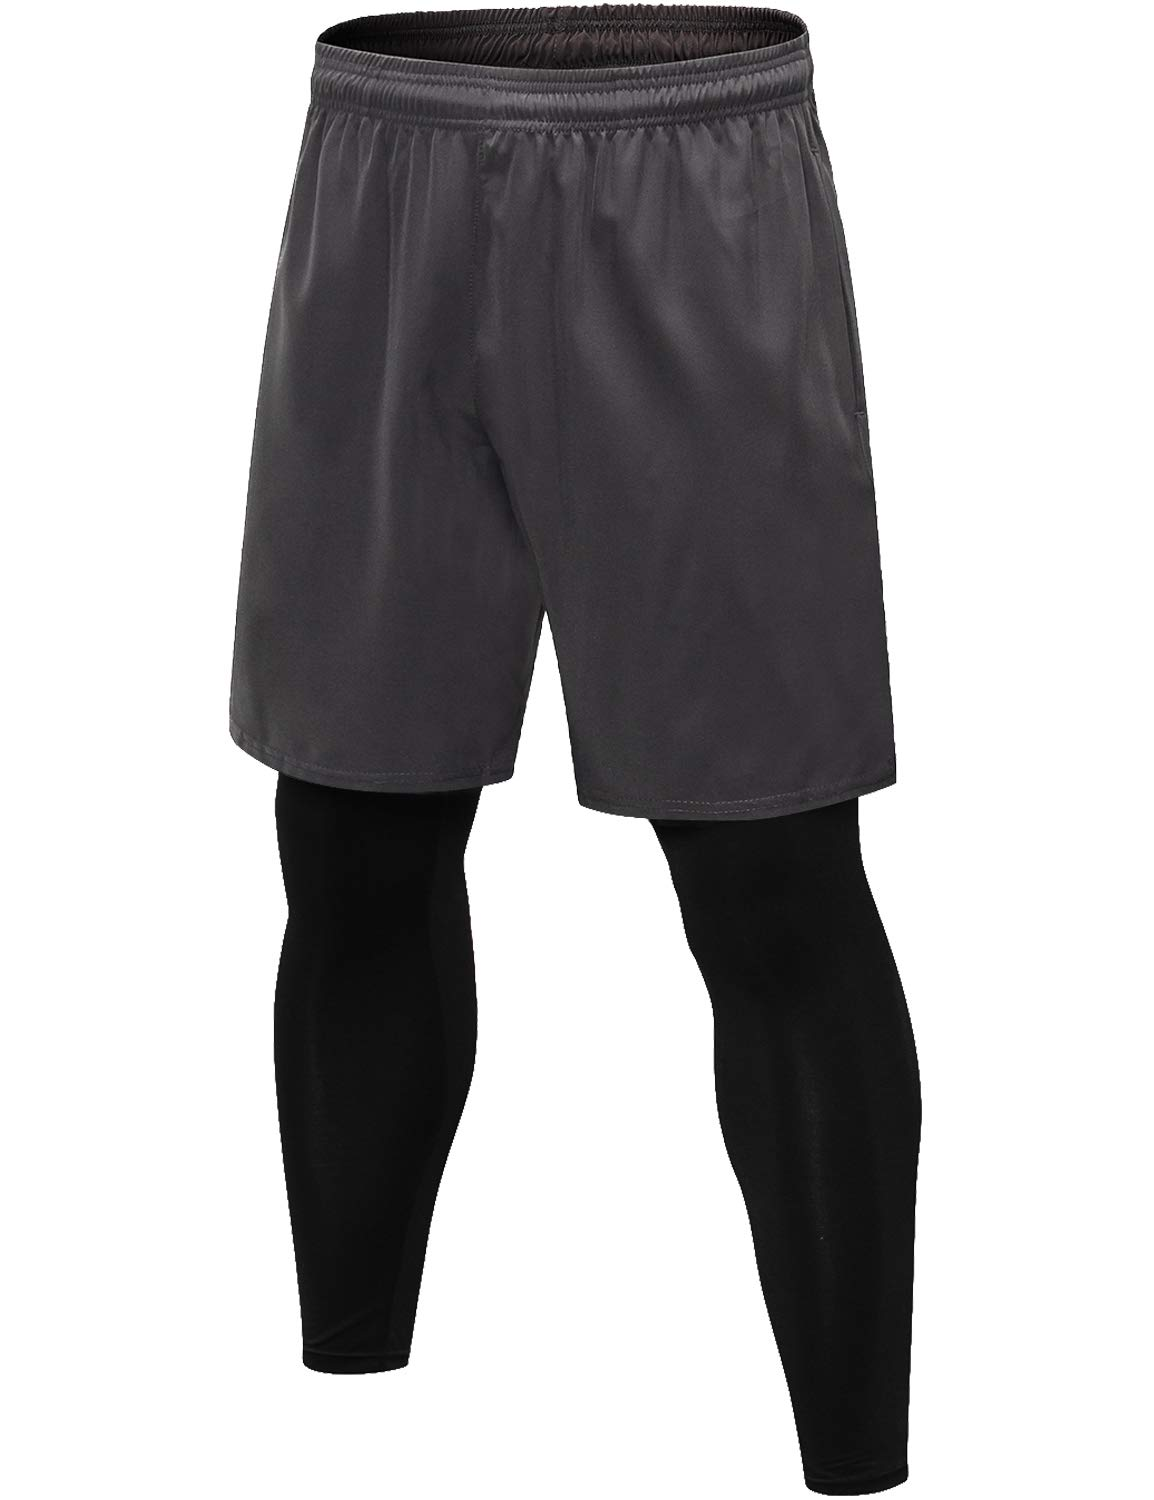 Lavento Men's 2-in-1 Running Shorts with Built-in Compression Leggings (1 Pack-3912 Gray,Medium) by Lavento